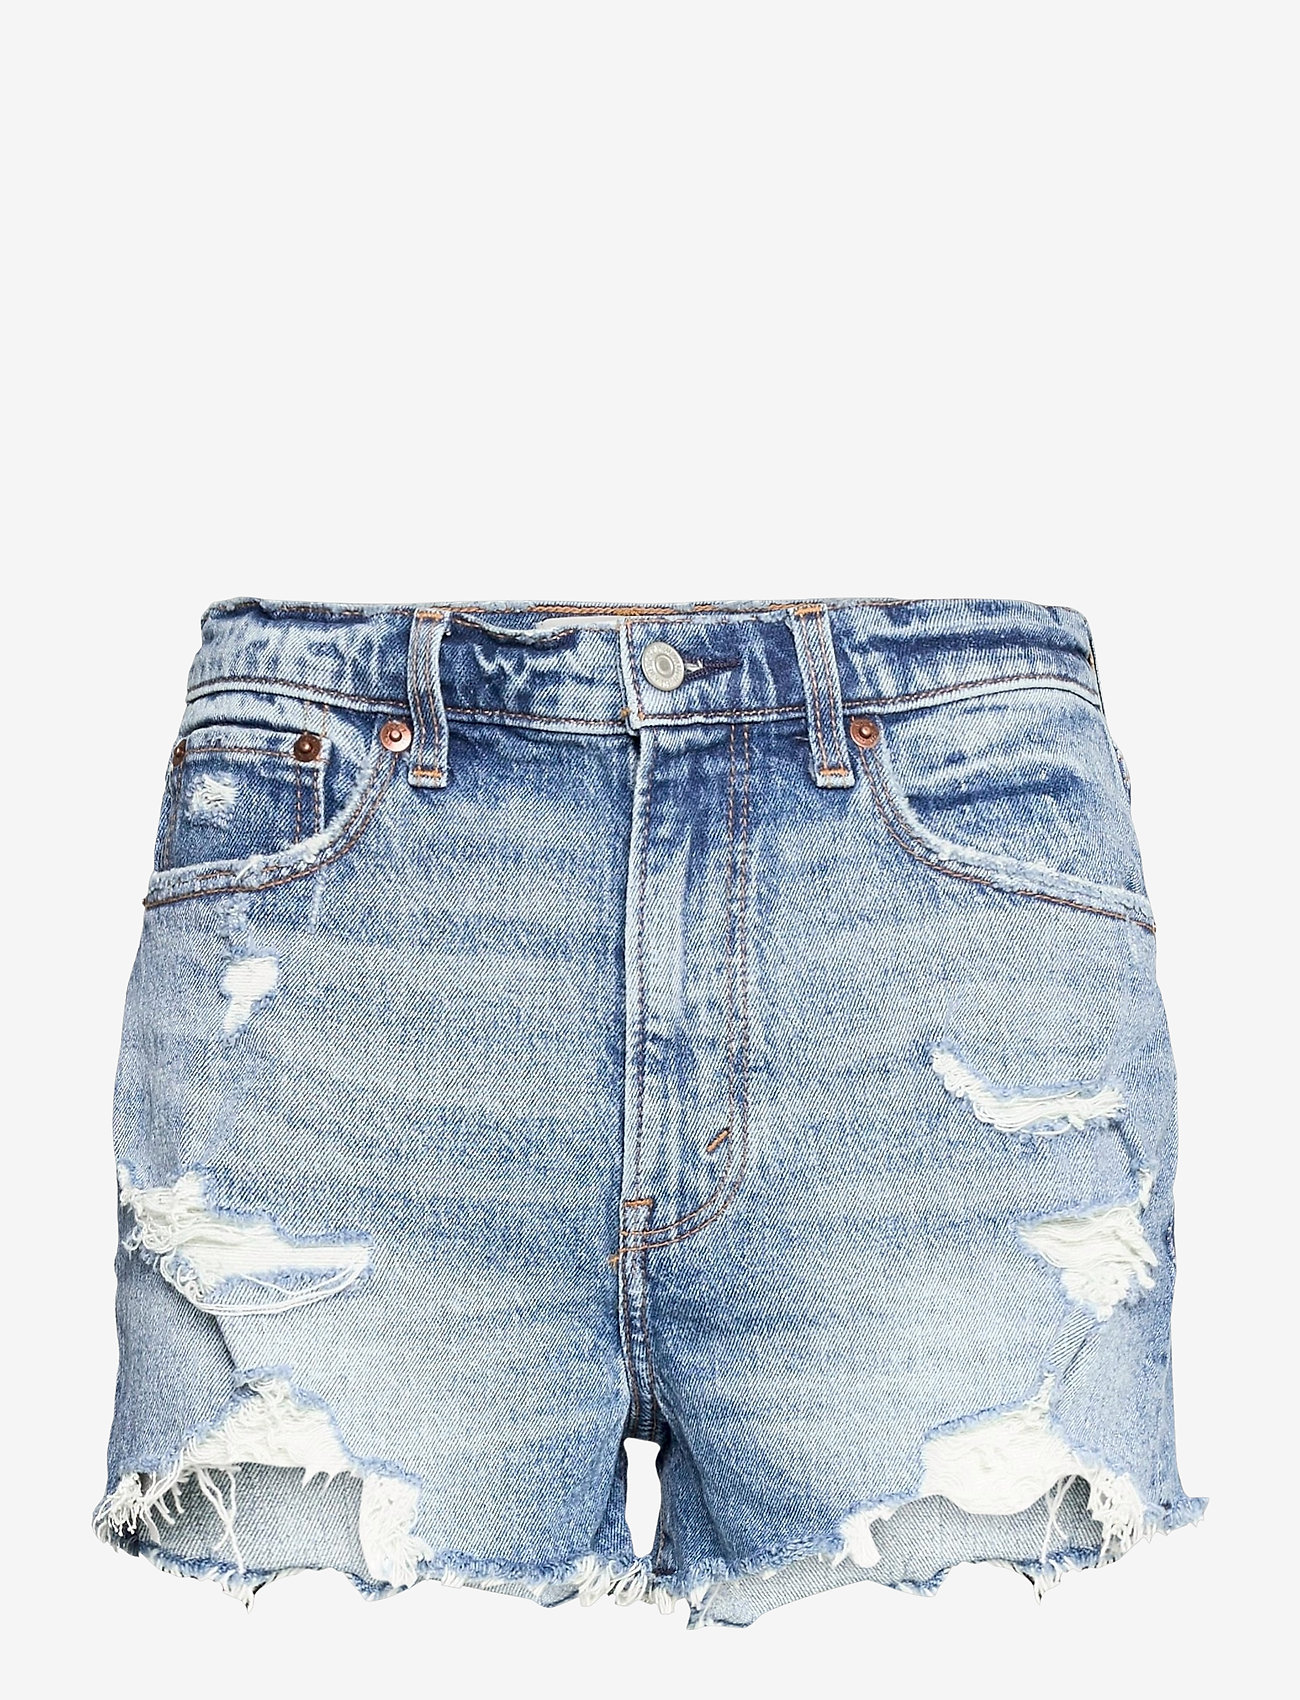 Abercrombie & Fitch - ANF WOMENS SHORTS - jeansshorts - medium destroy hr mom - 0